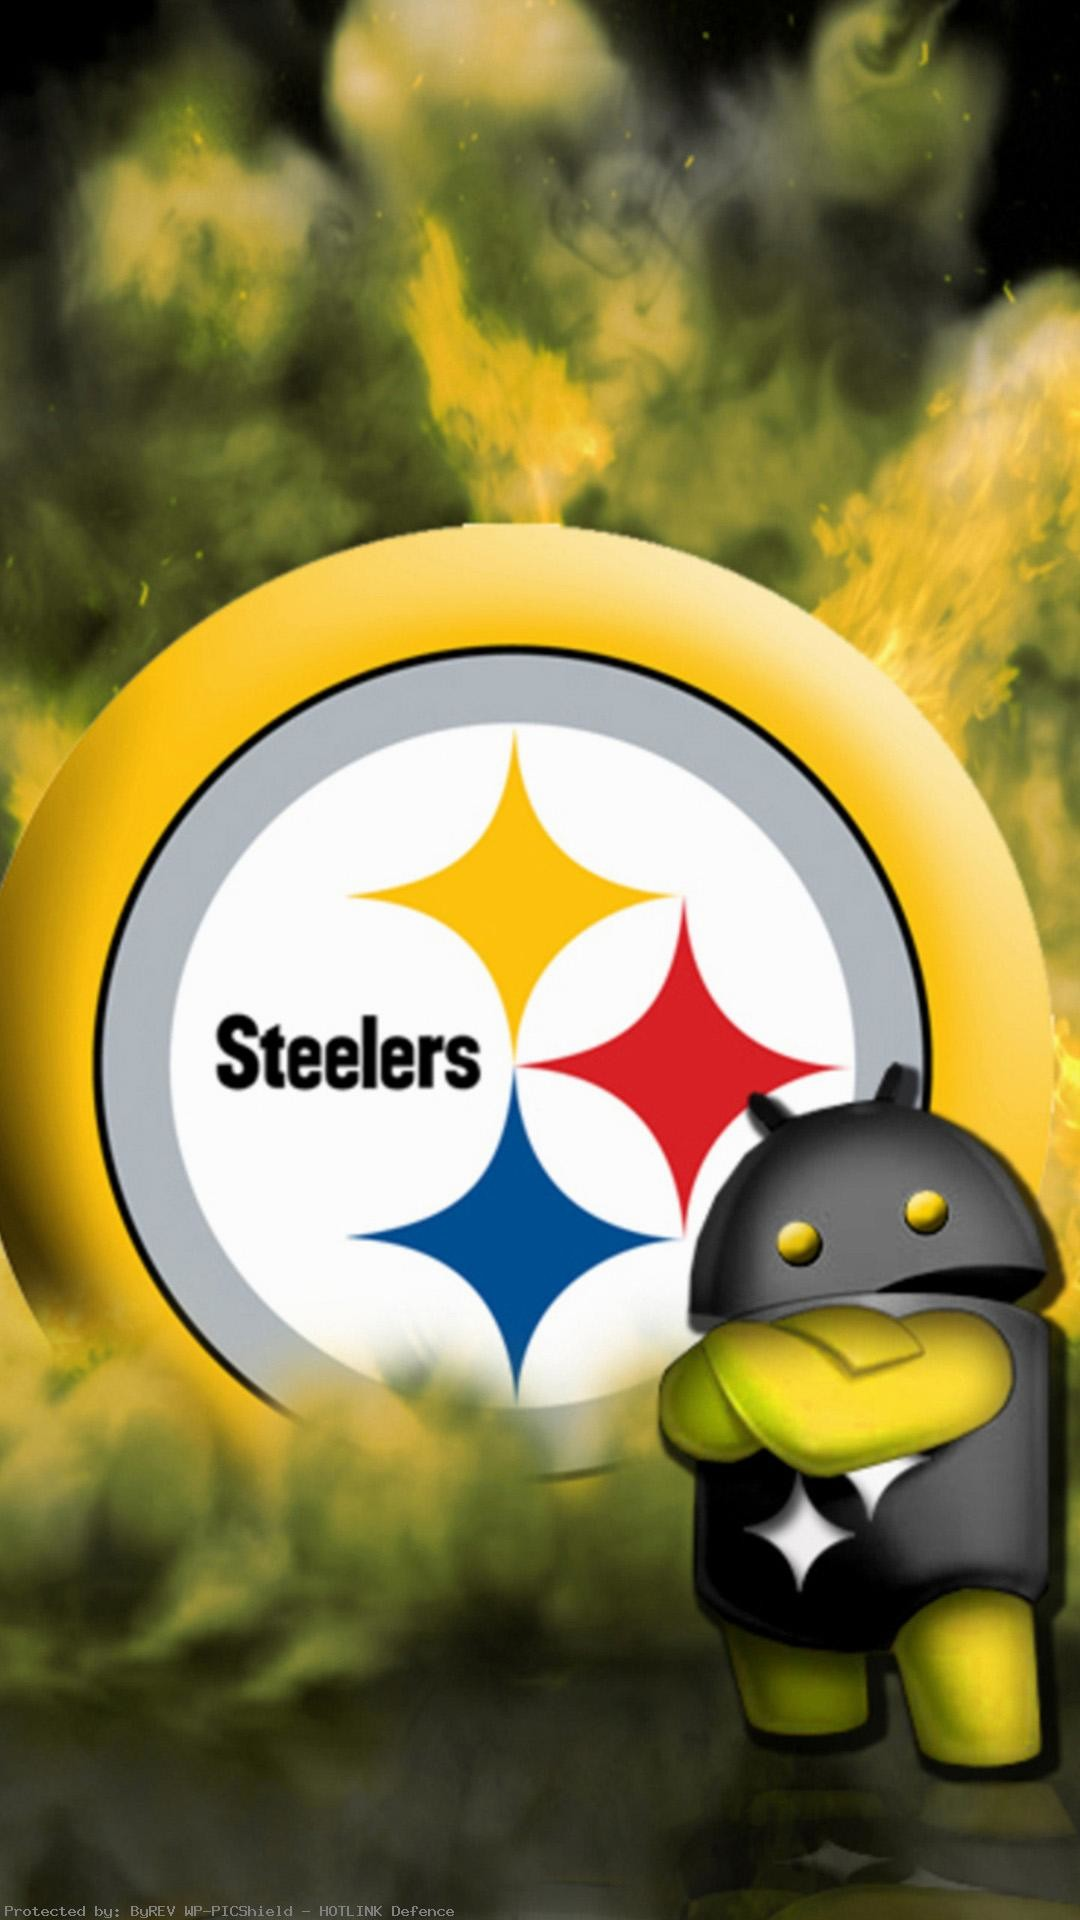 Android-Steelers-Galaxy-S-HD-1080%C3%971920-